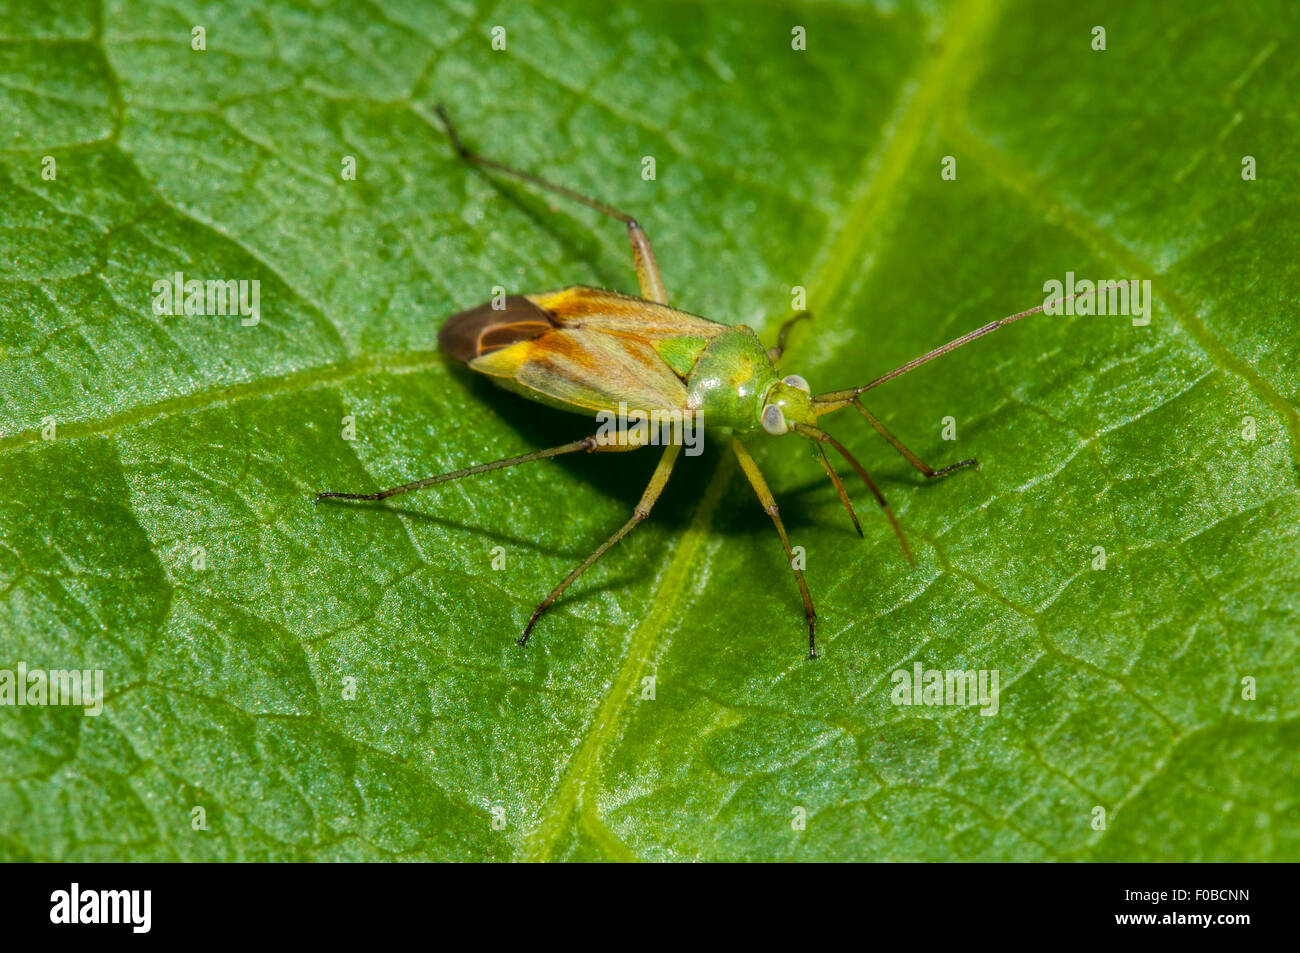 Potato capsid bug (Closterotomus norvegicus) adult perched on a leaf at Staveley Nature Reserve, North Yorkshire. - Stock Image